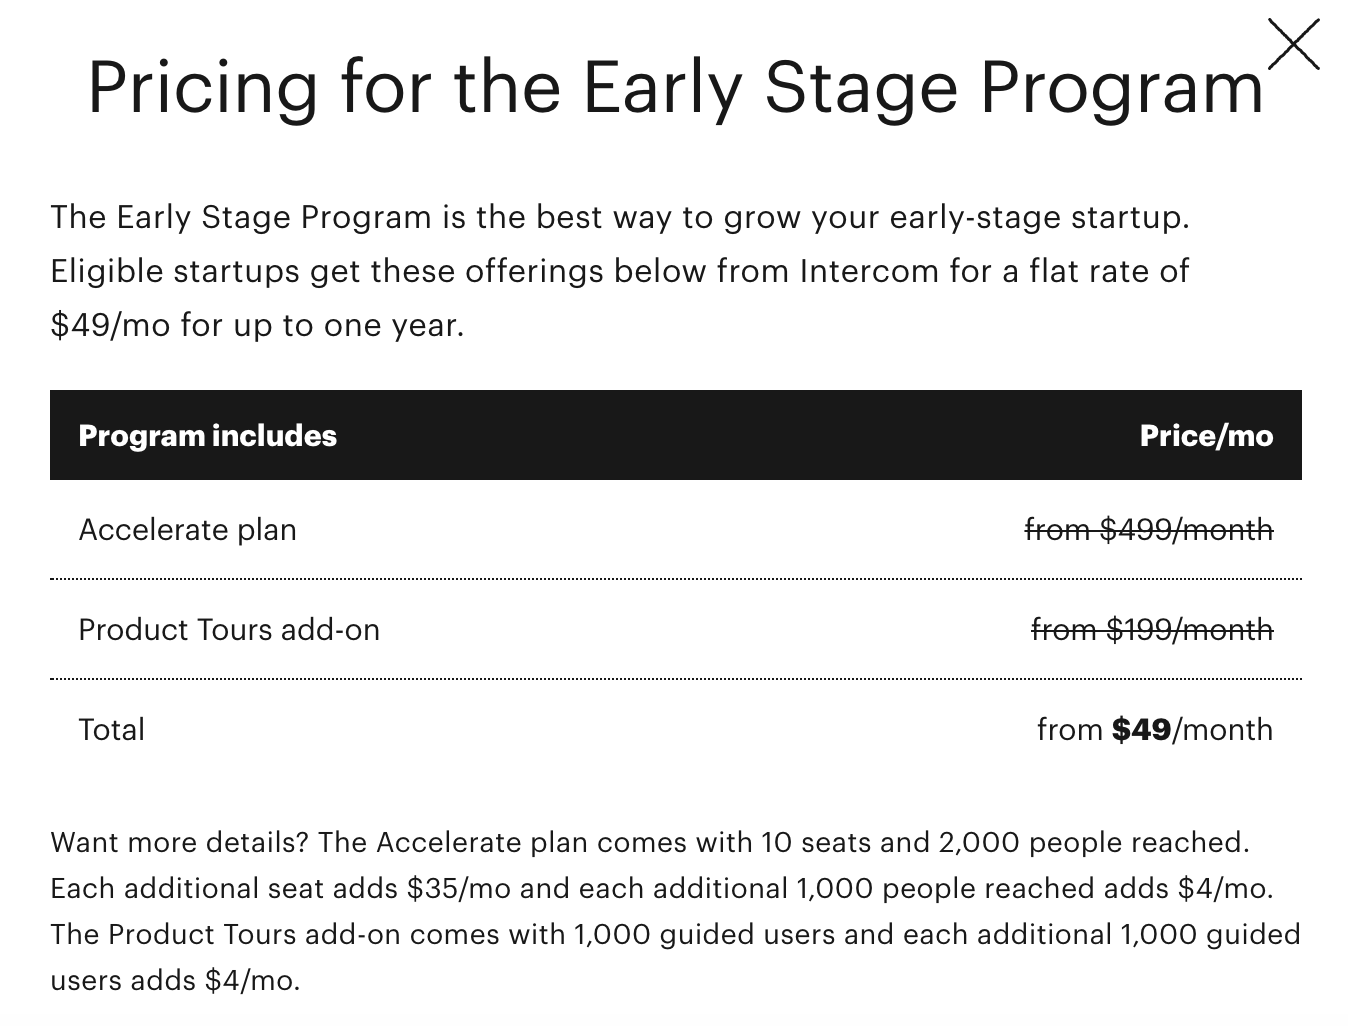 Intercom early stage pricing